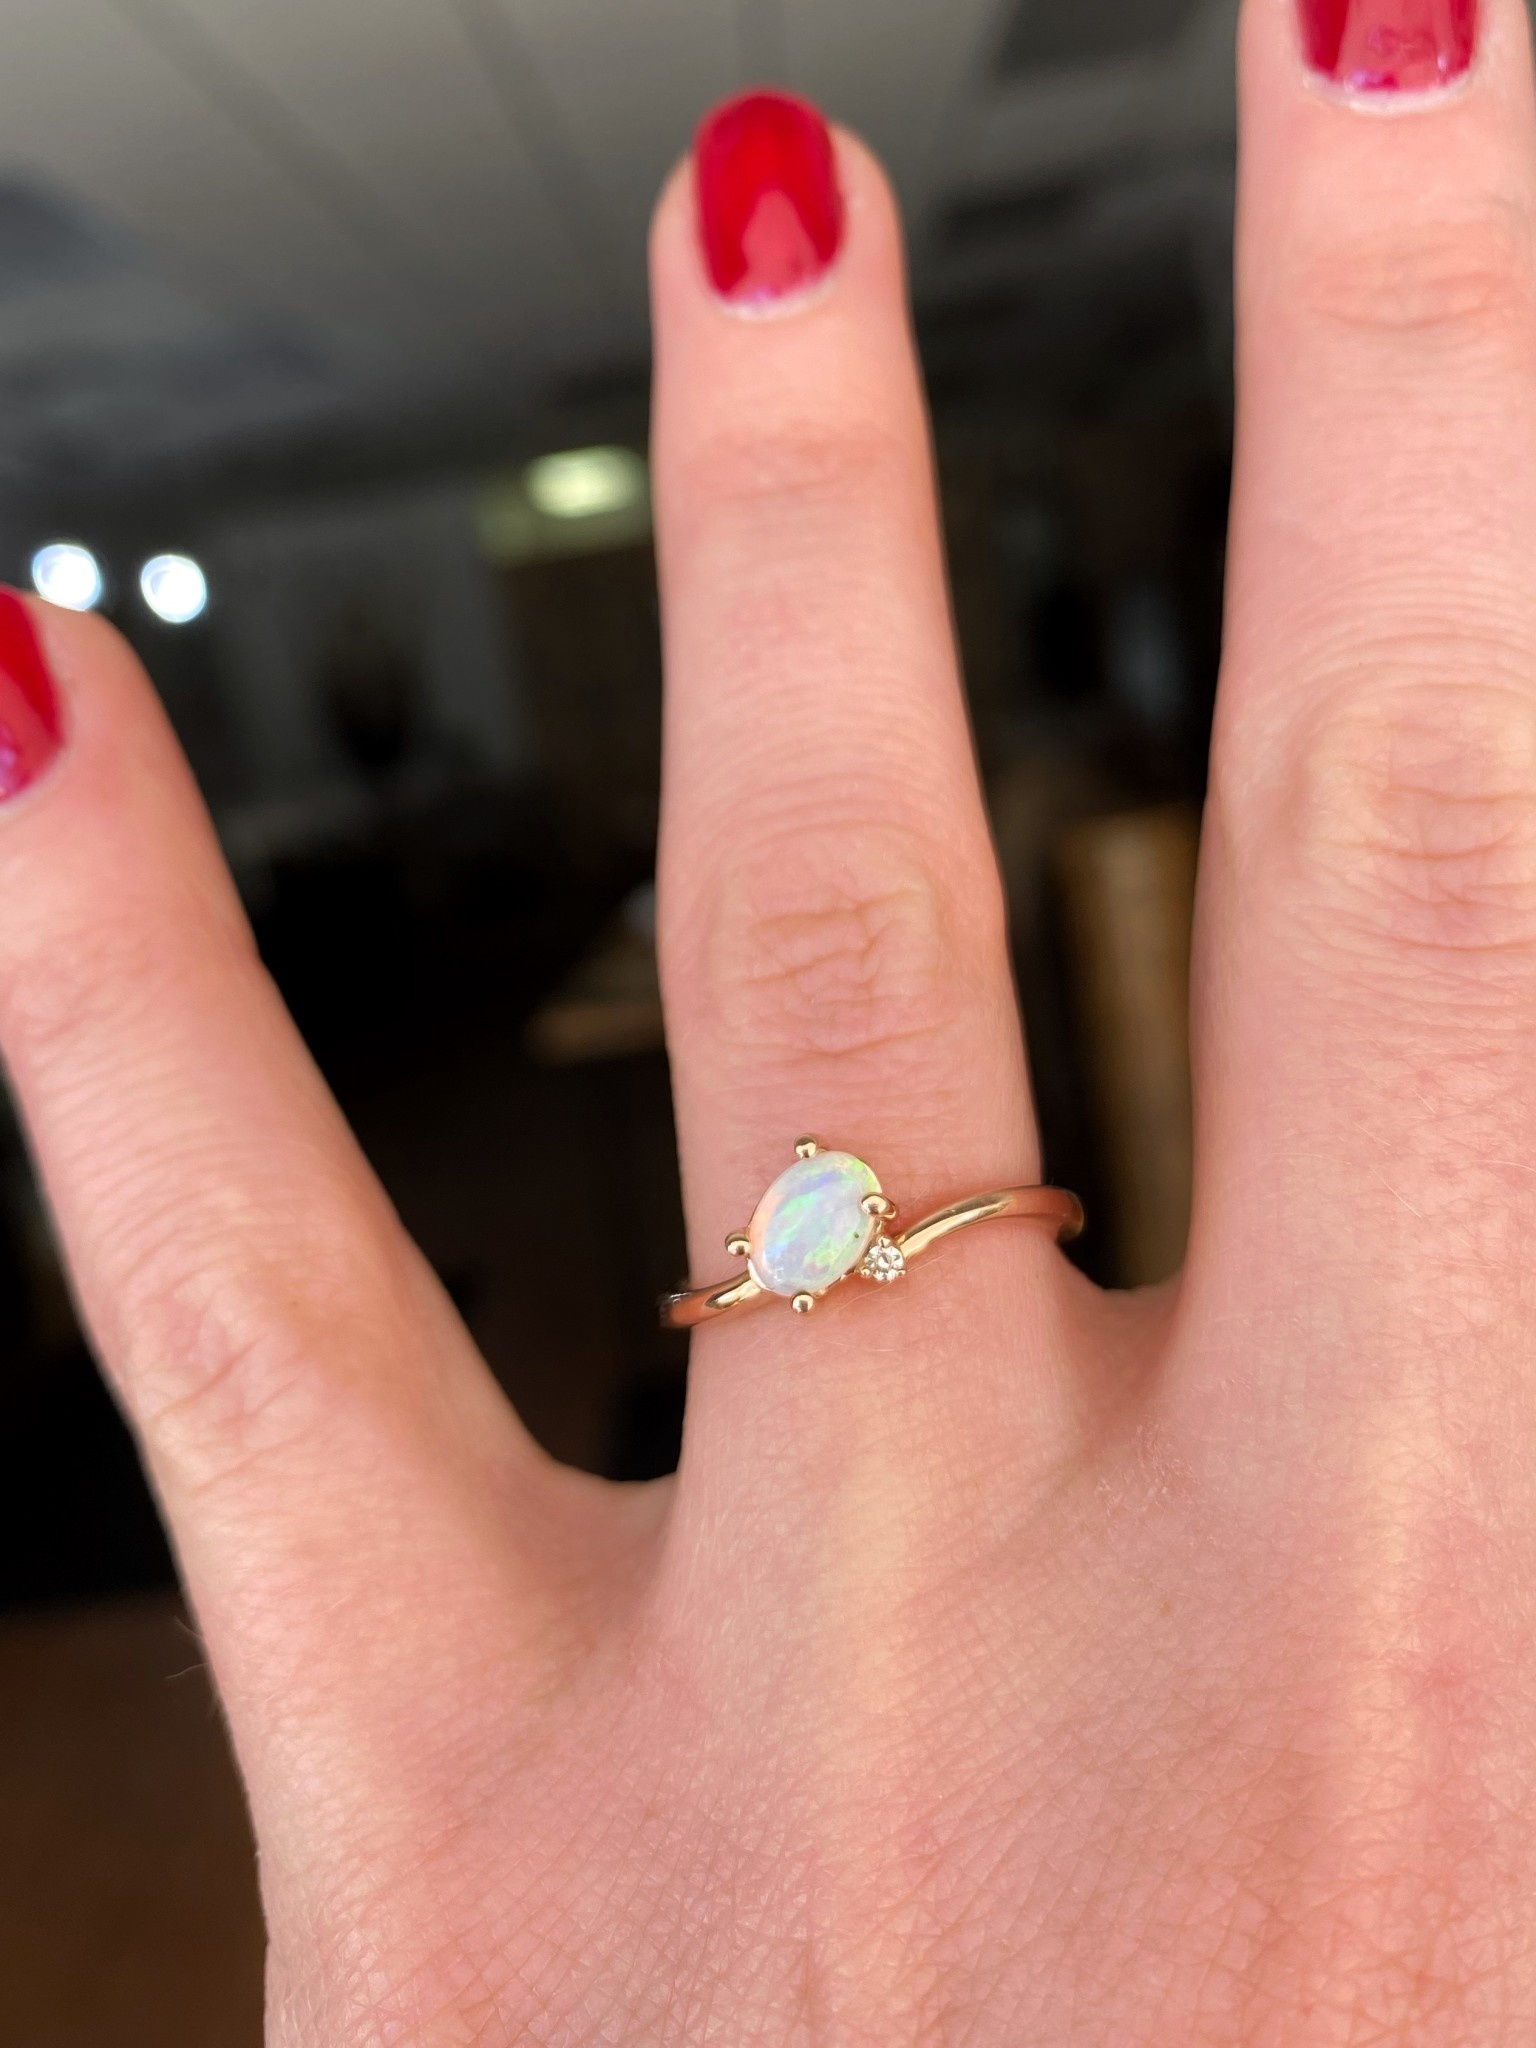 Opal ring with diamond accent in rose gold